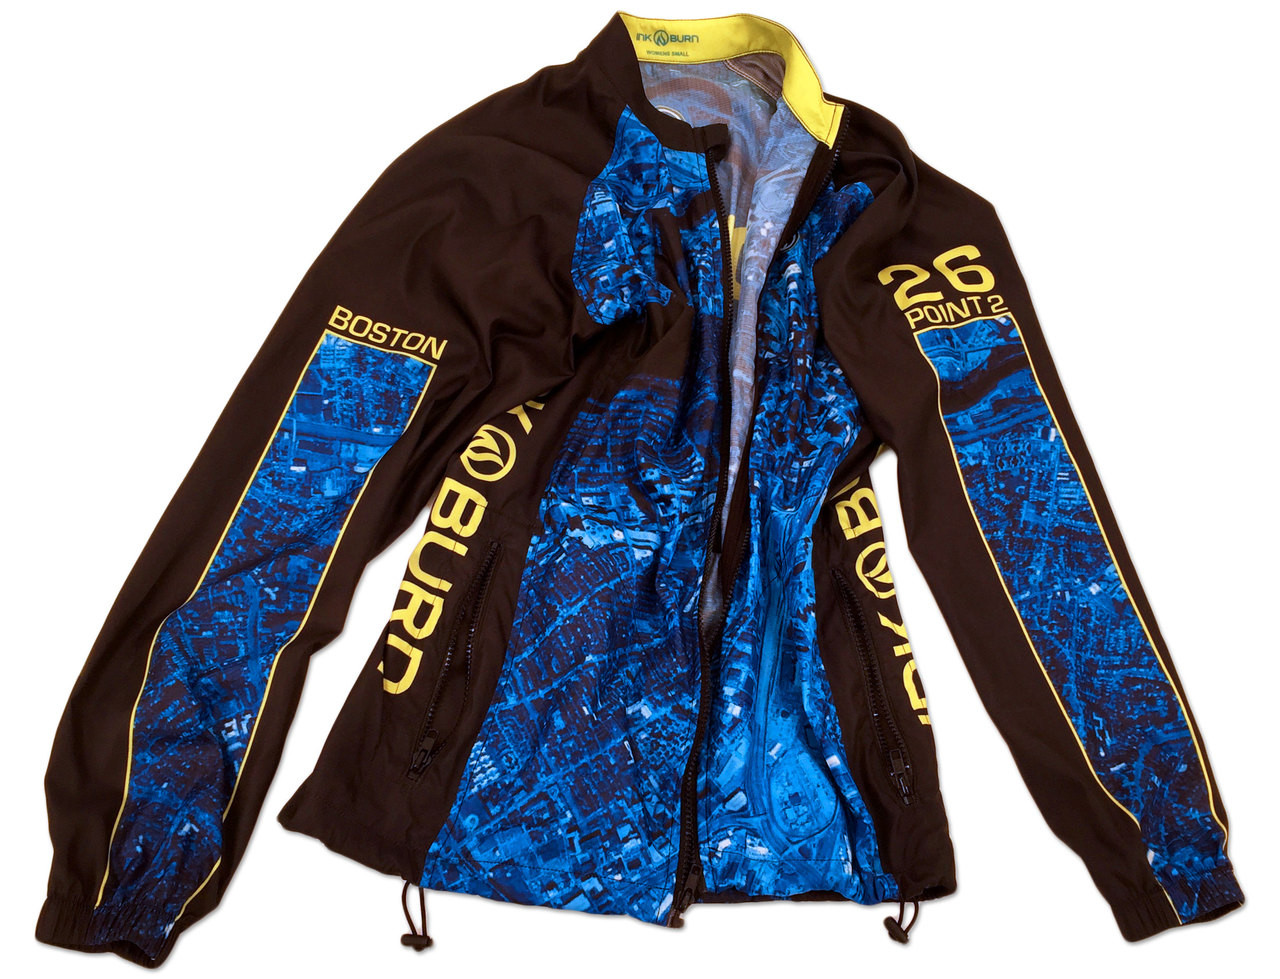 Men's 2015 Boston Windbreaker Jacket Back